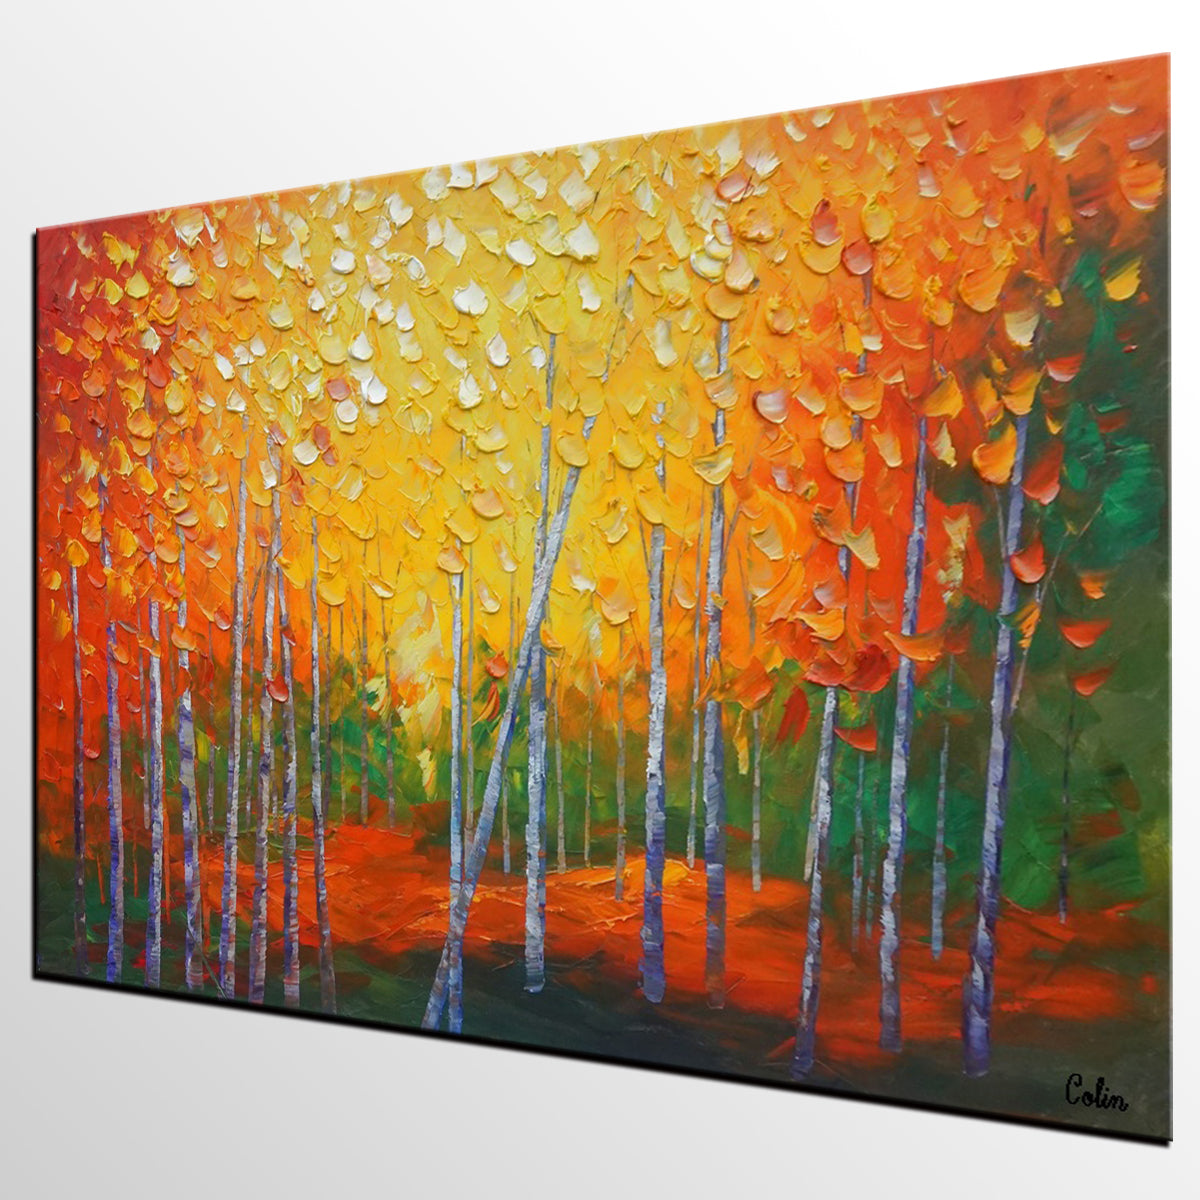 Large Wall Art, Landscape Painting, Oil Painting, Abstract Painting, Large Art, Canvas Art, Modern Wall Art, Canvas Painting